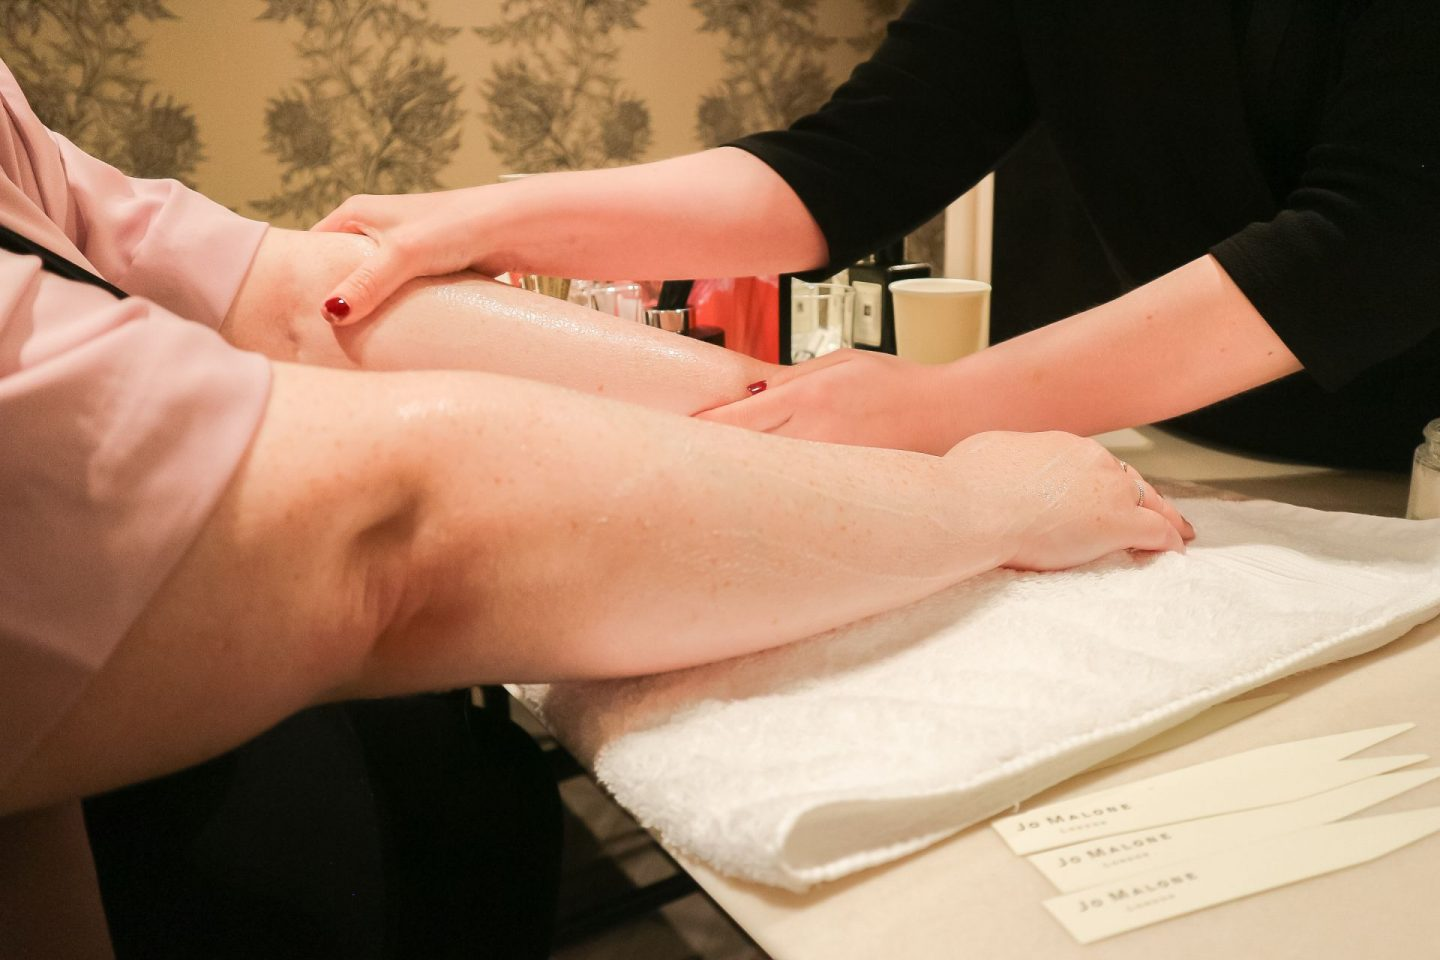 jo malone hand and arm massage